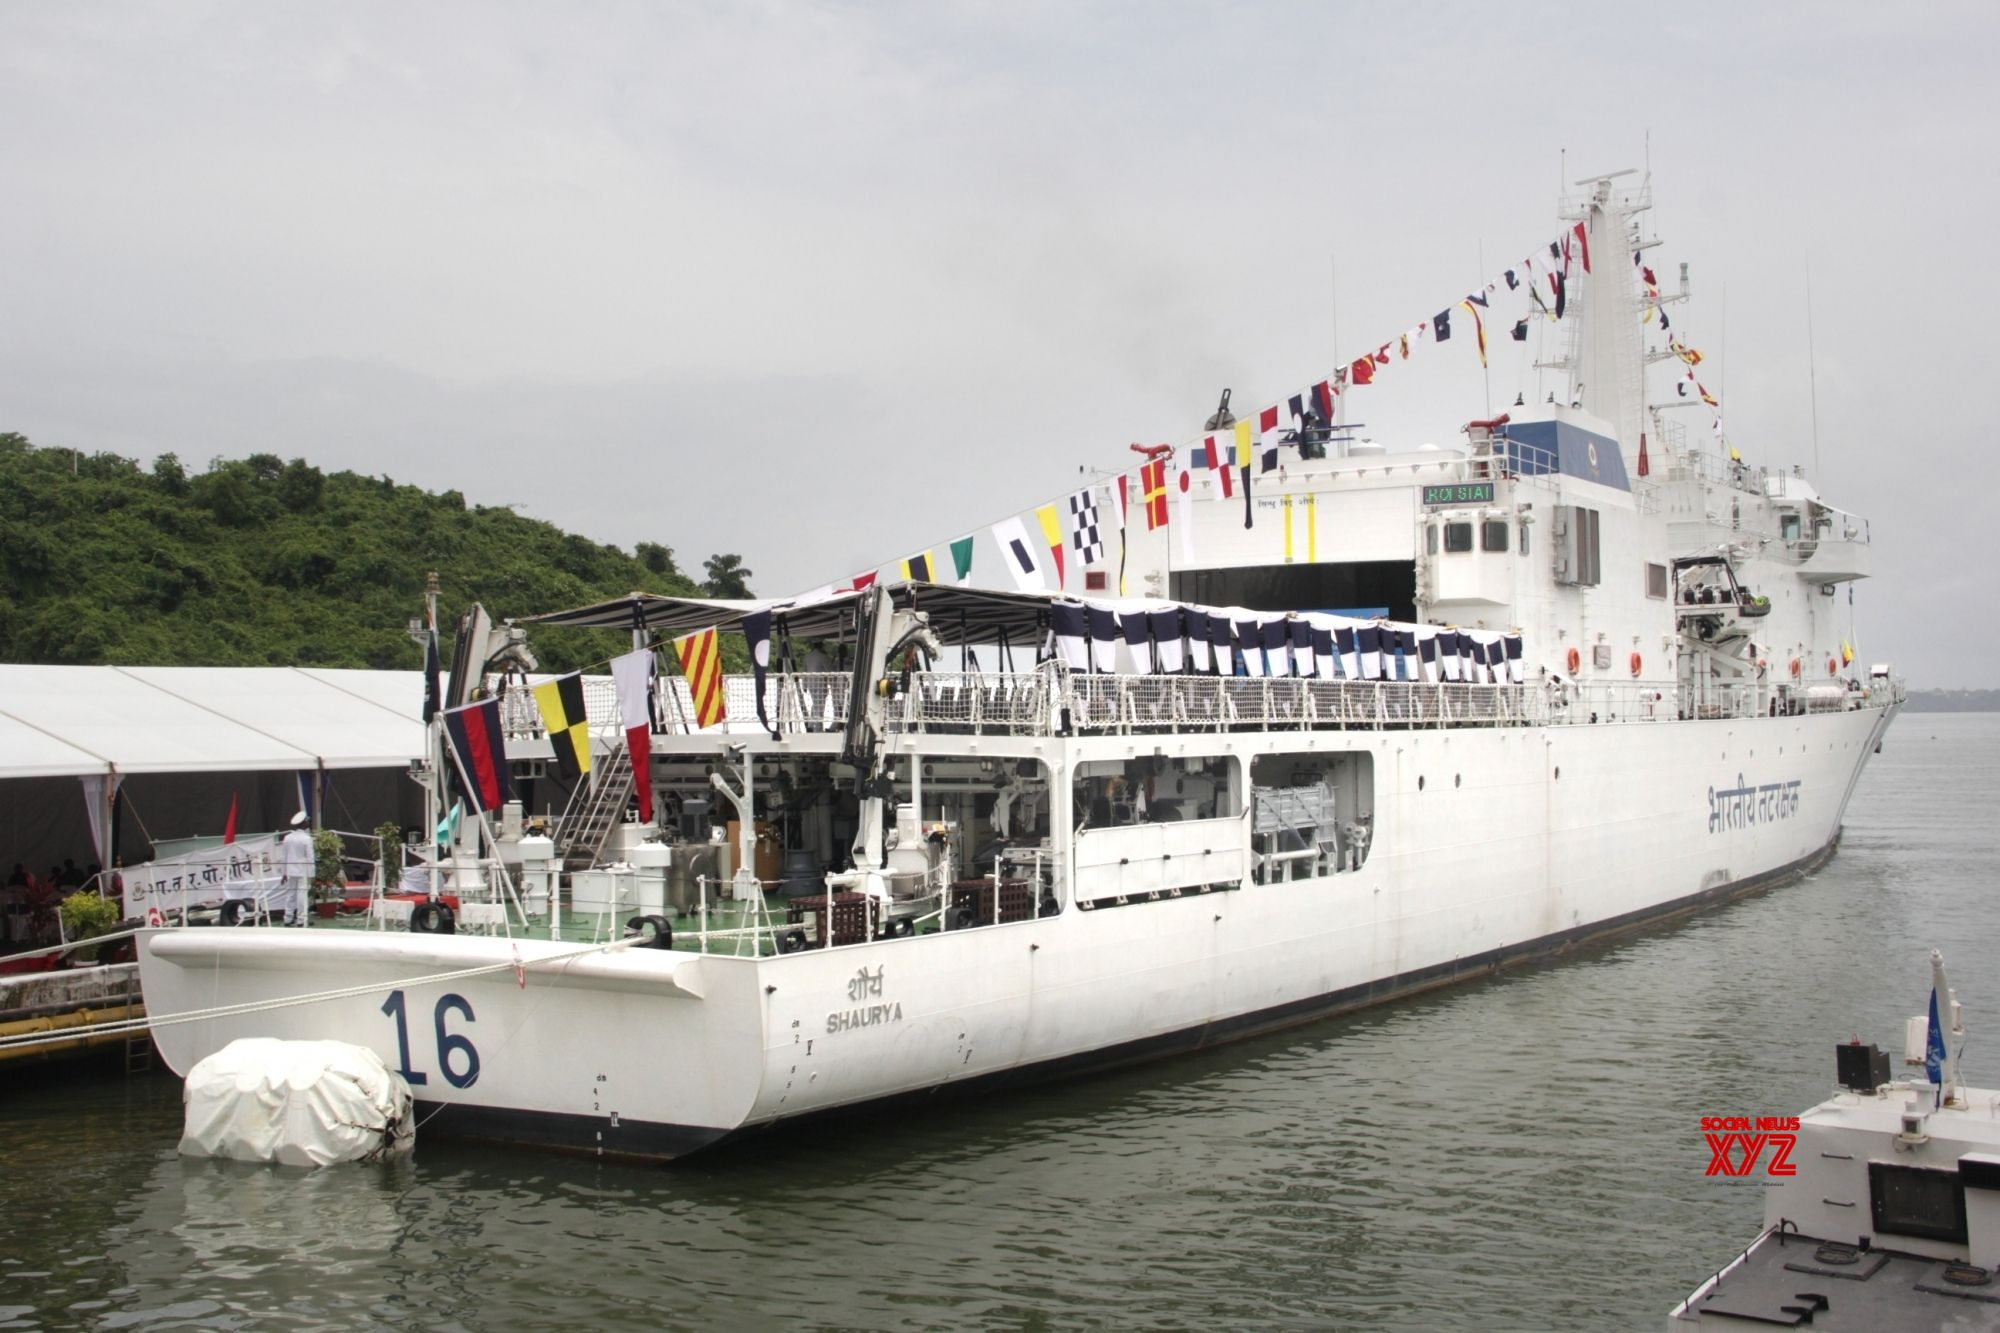 Indian Coast Guard ship 'Shaurya' commissioned in Goa